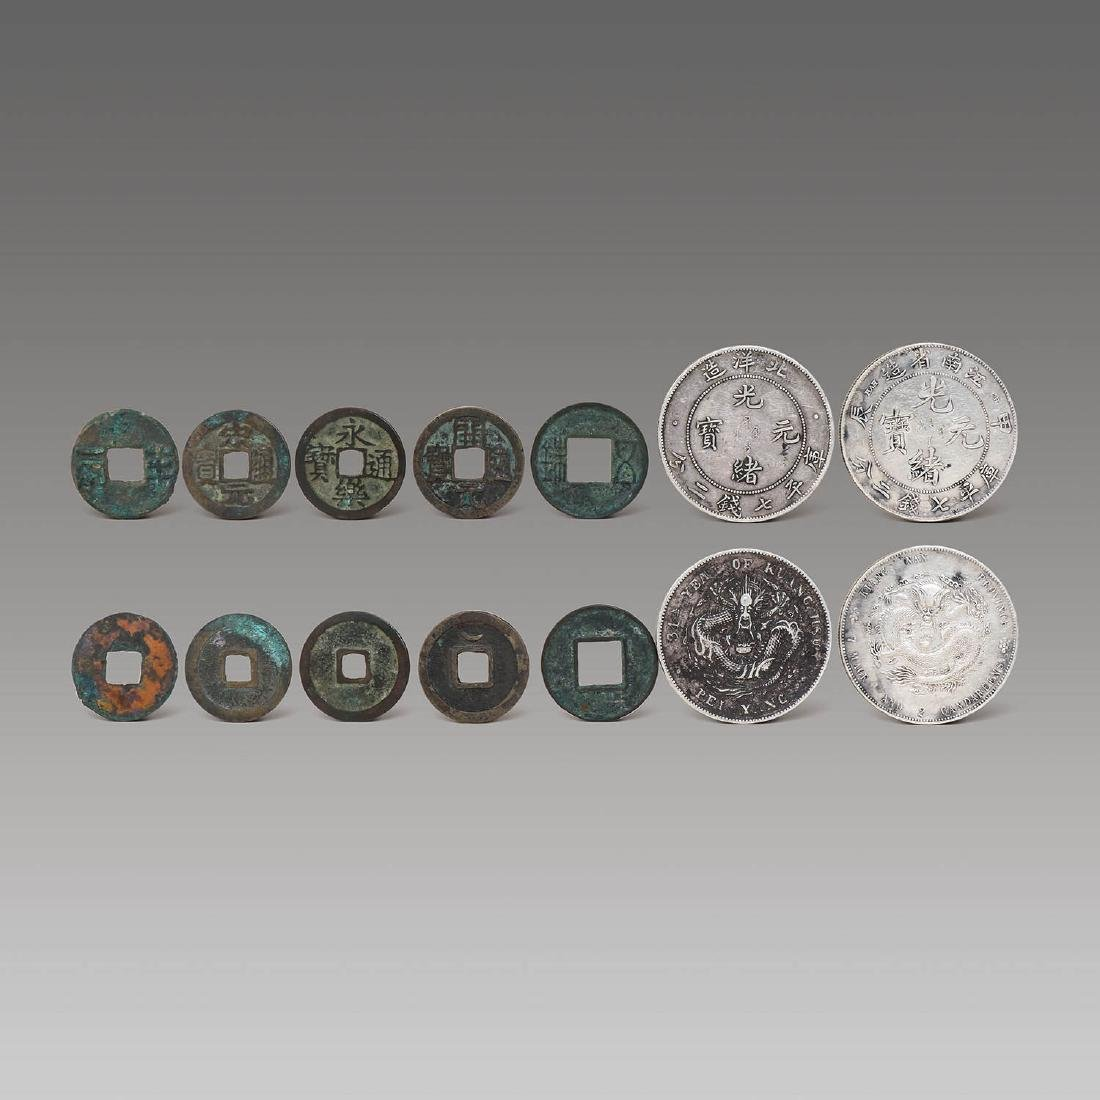 GROUP OF CHINESE OLD COINS